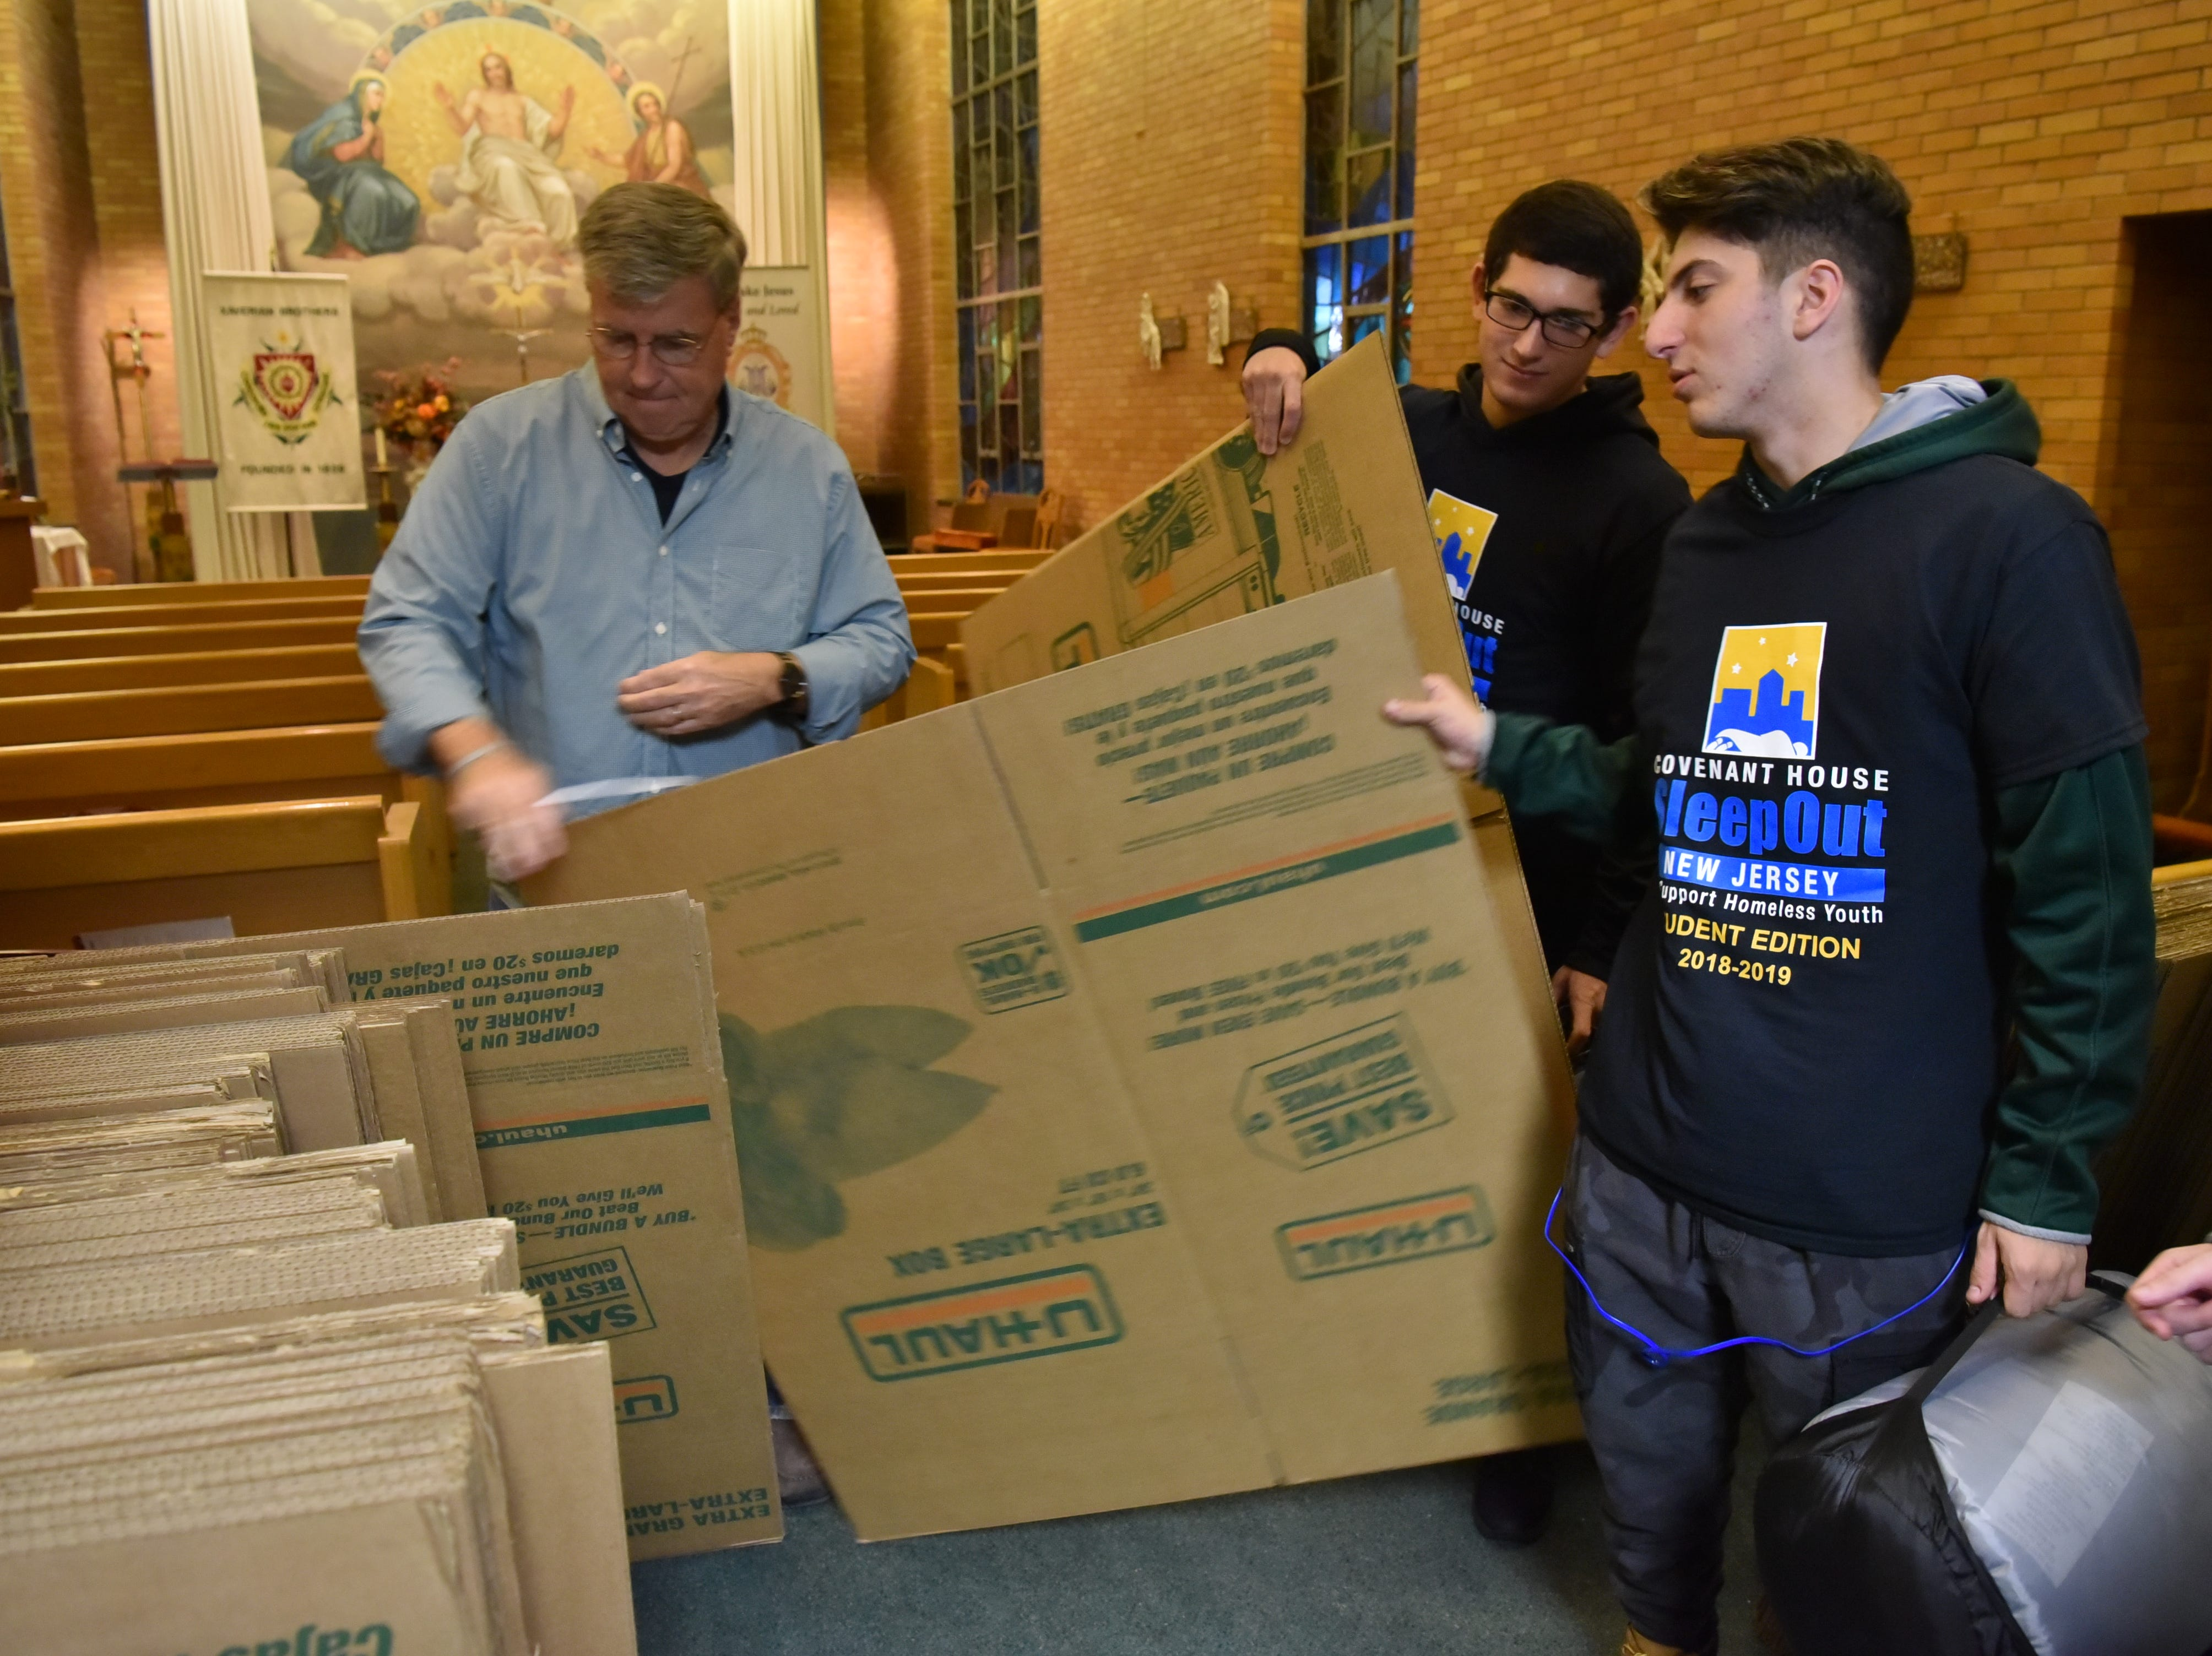 Students receive cardboard boxes in which they will spend the night outside. Members of the St. Joe's student body and faculty raise money for the North Jersey chapter of Covenant House by spending the night out.